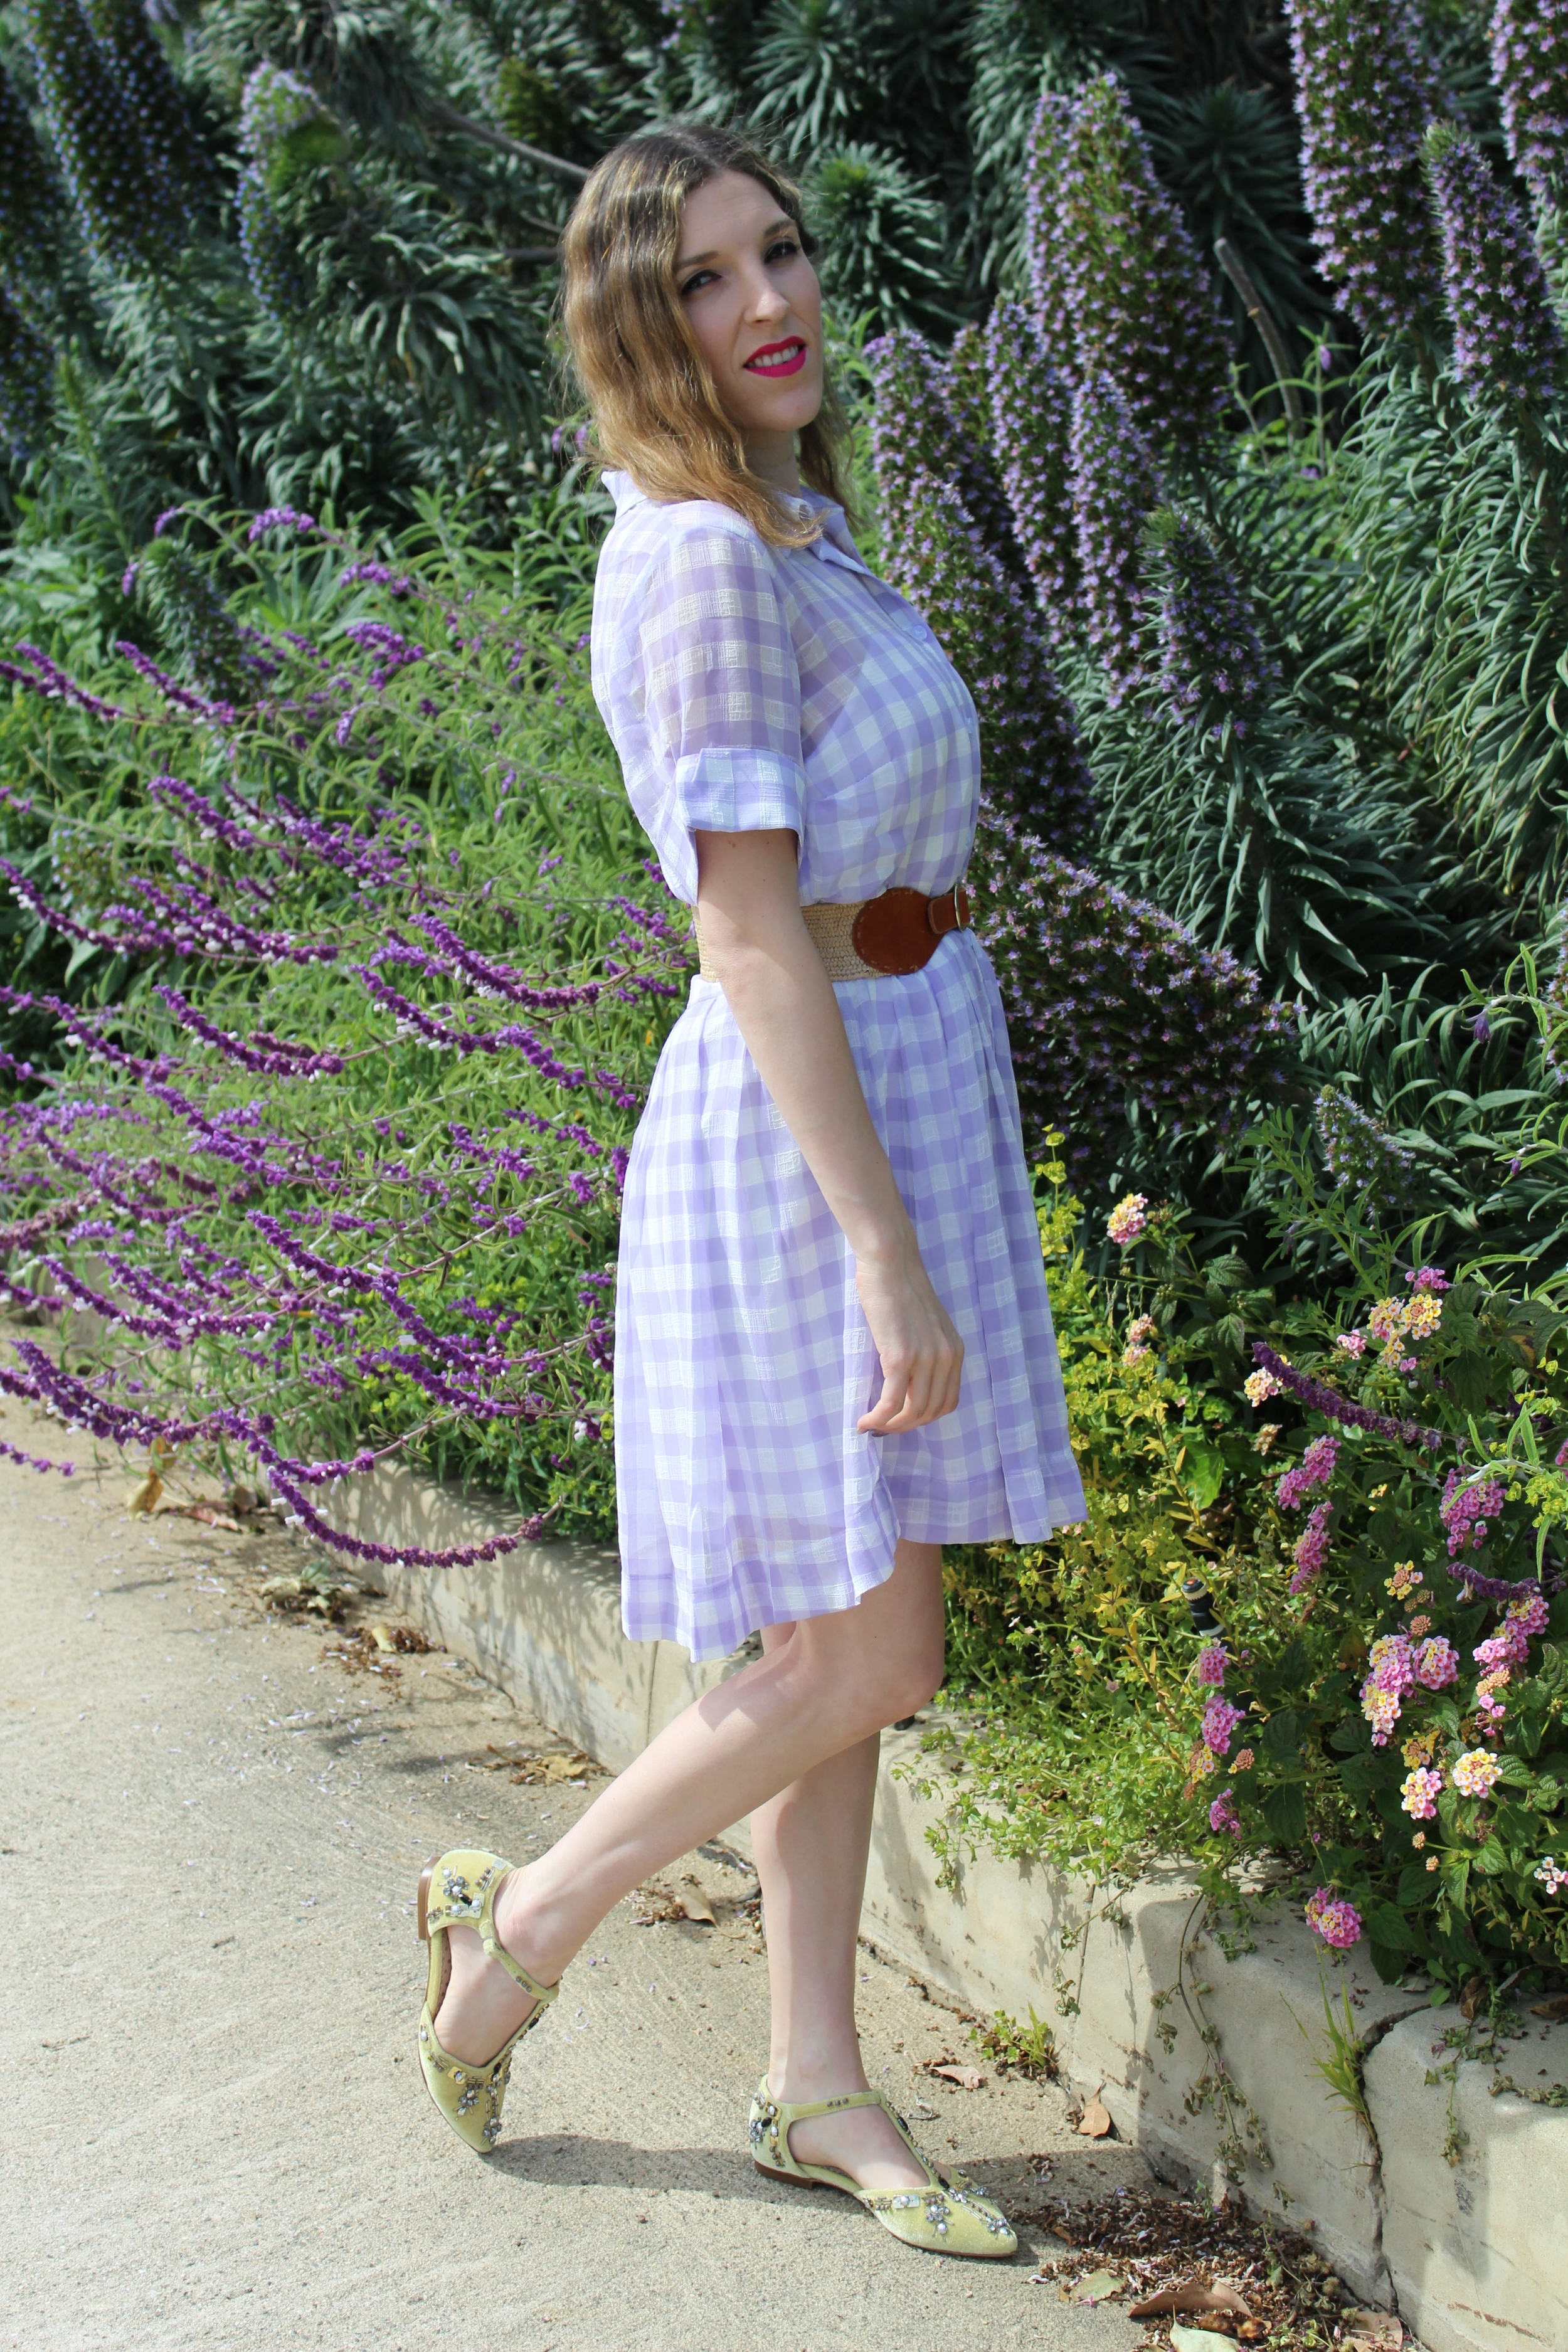 Sorry for the squint face, it was really sunny out that day!  Keep following for more new looks!!! Ciao!  Dress:  Sister Jane   Belt: Banana Republic (old) similar  here   Flats:  Boden USA